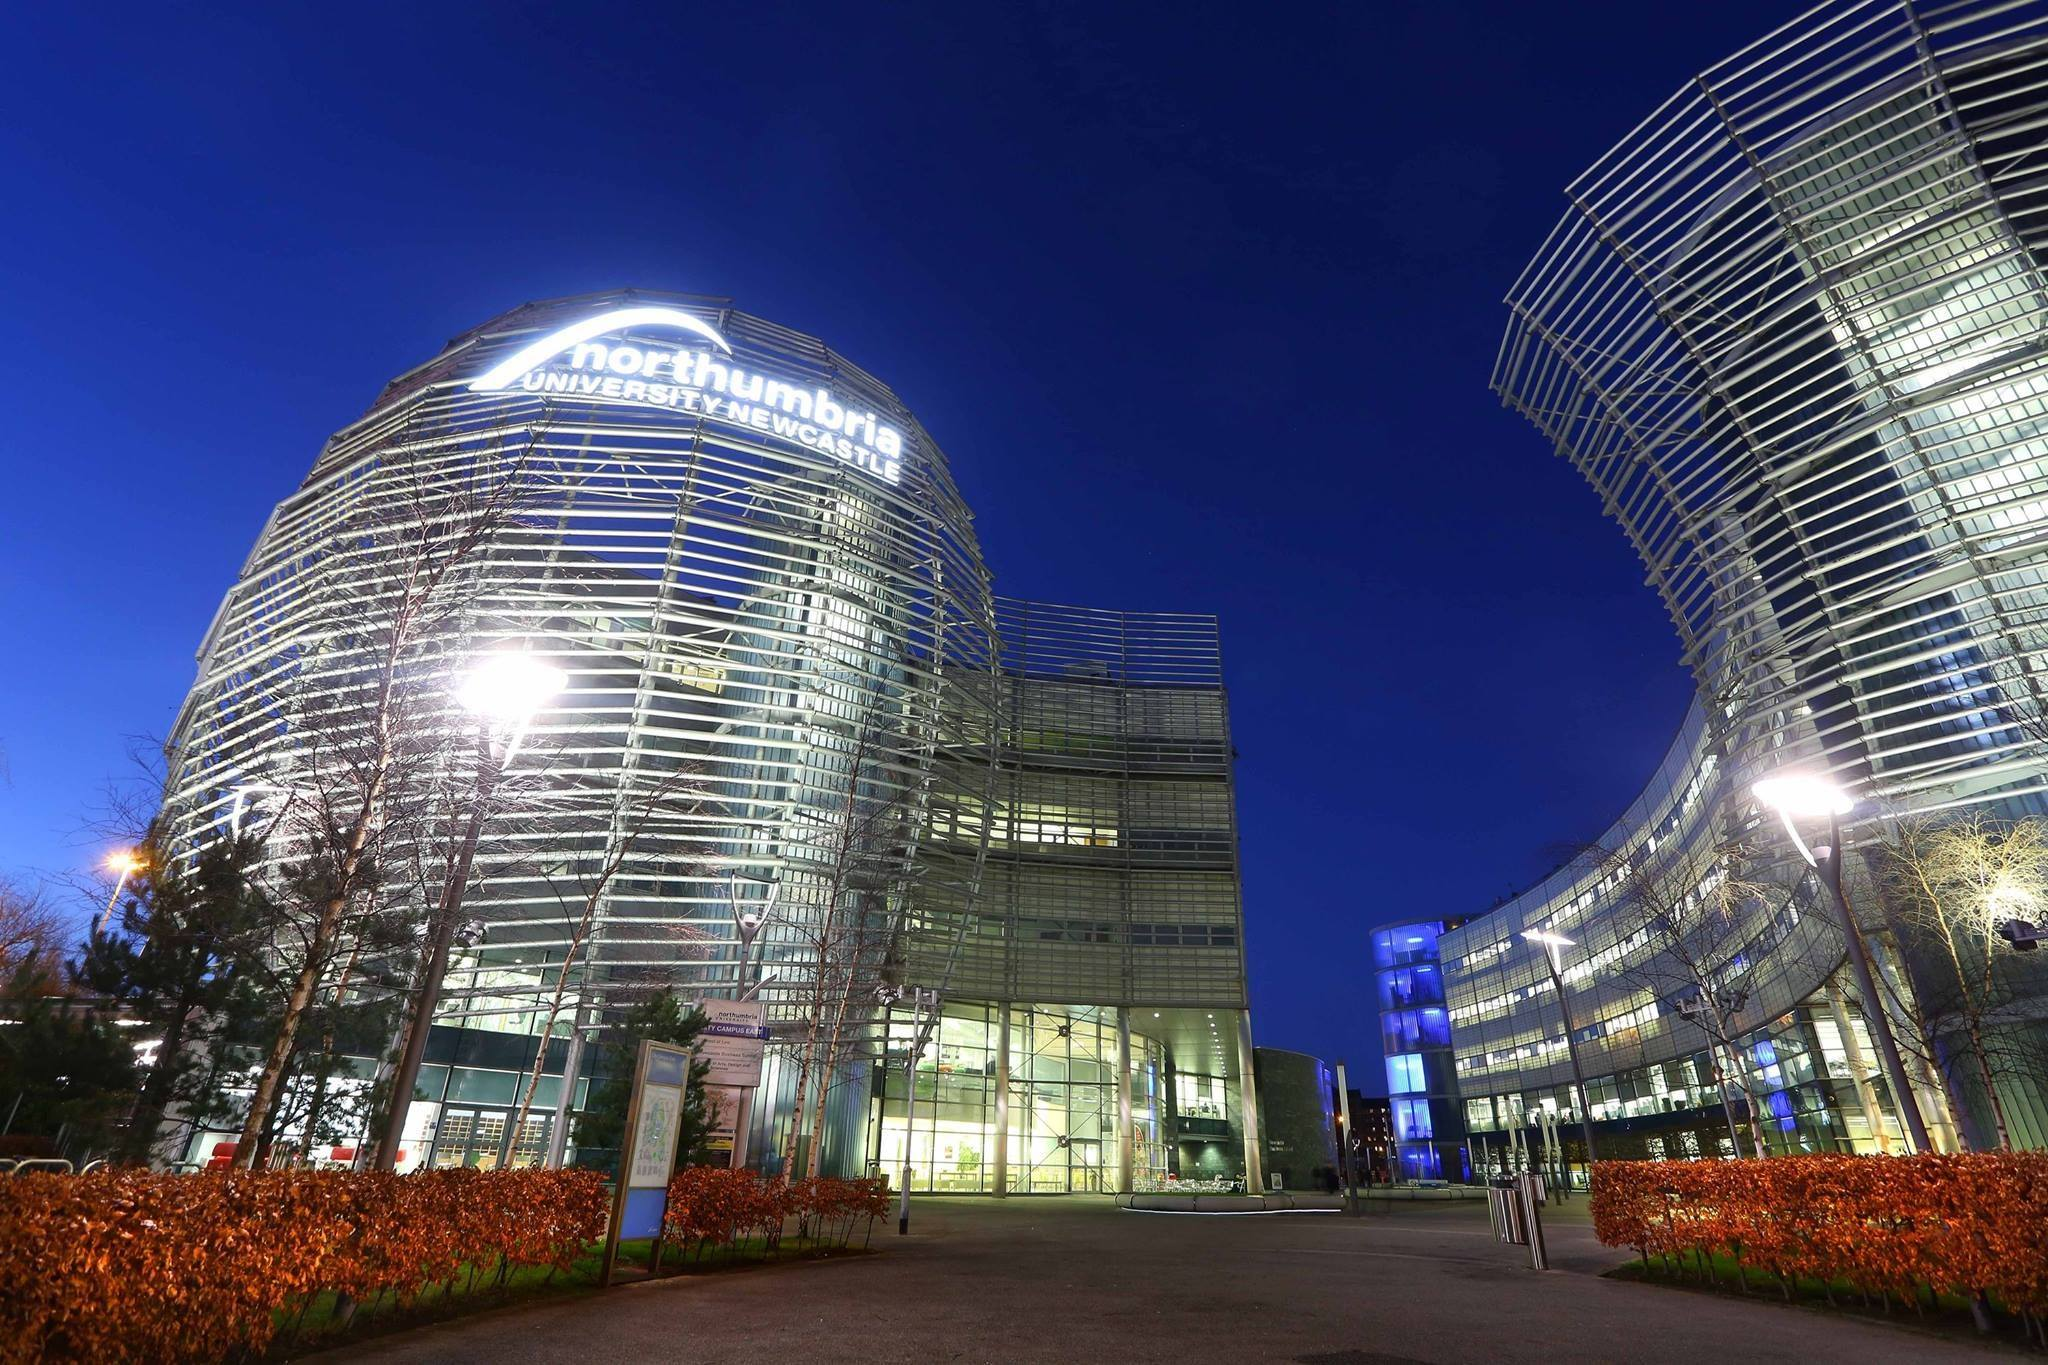 Party Universities, with an image of Northumbria University at night